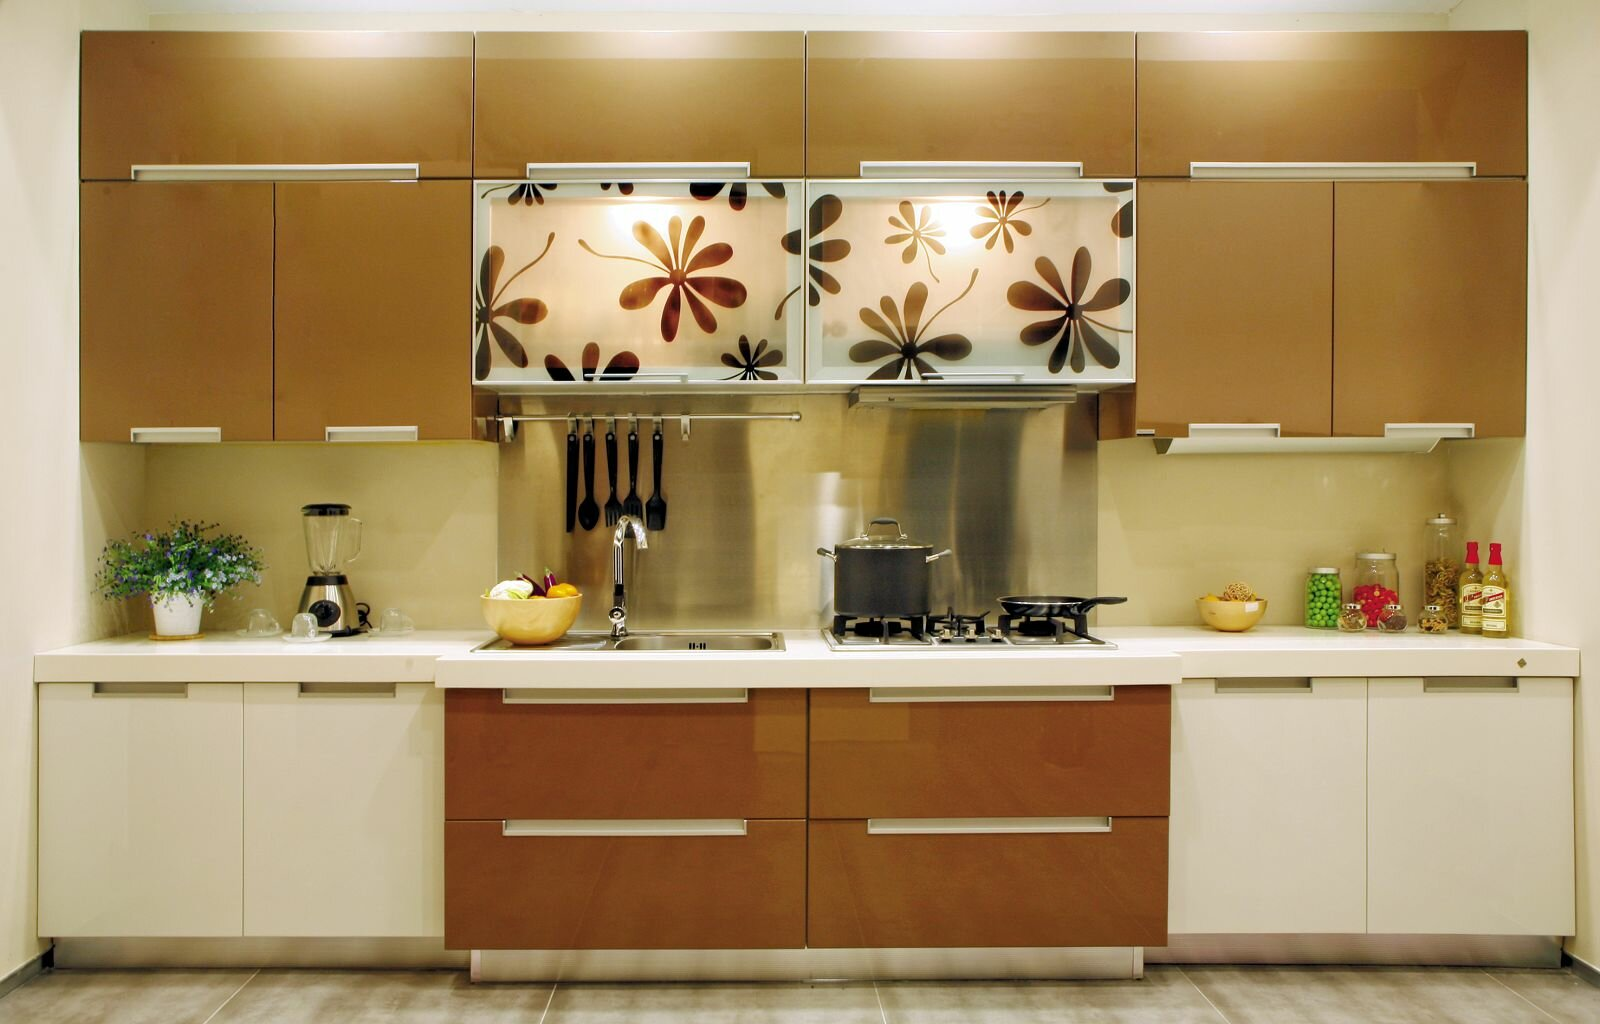 designing kitchen cabinets home depot canada island 15 great that will inspire you